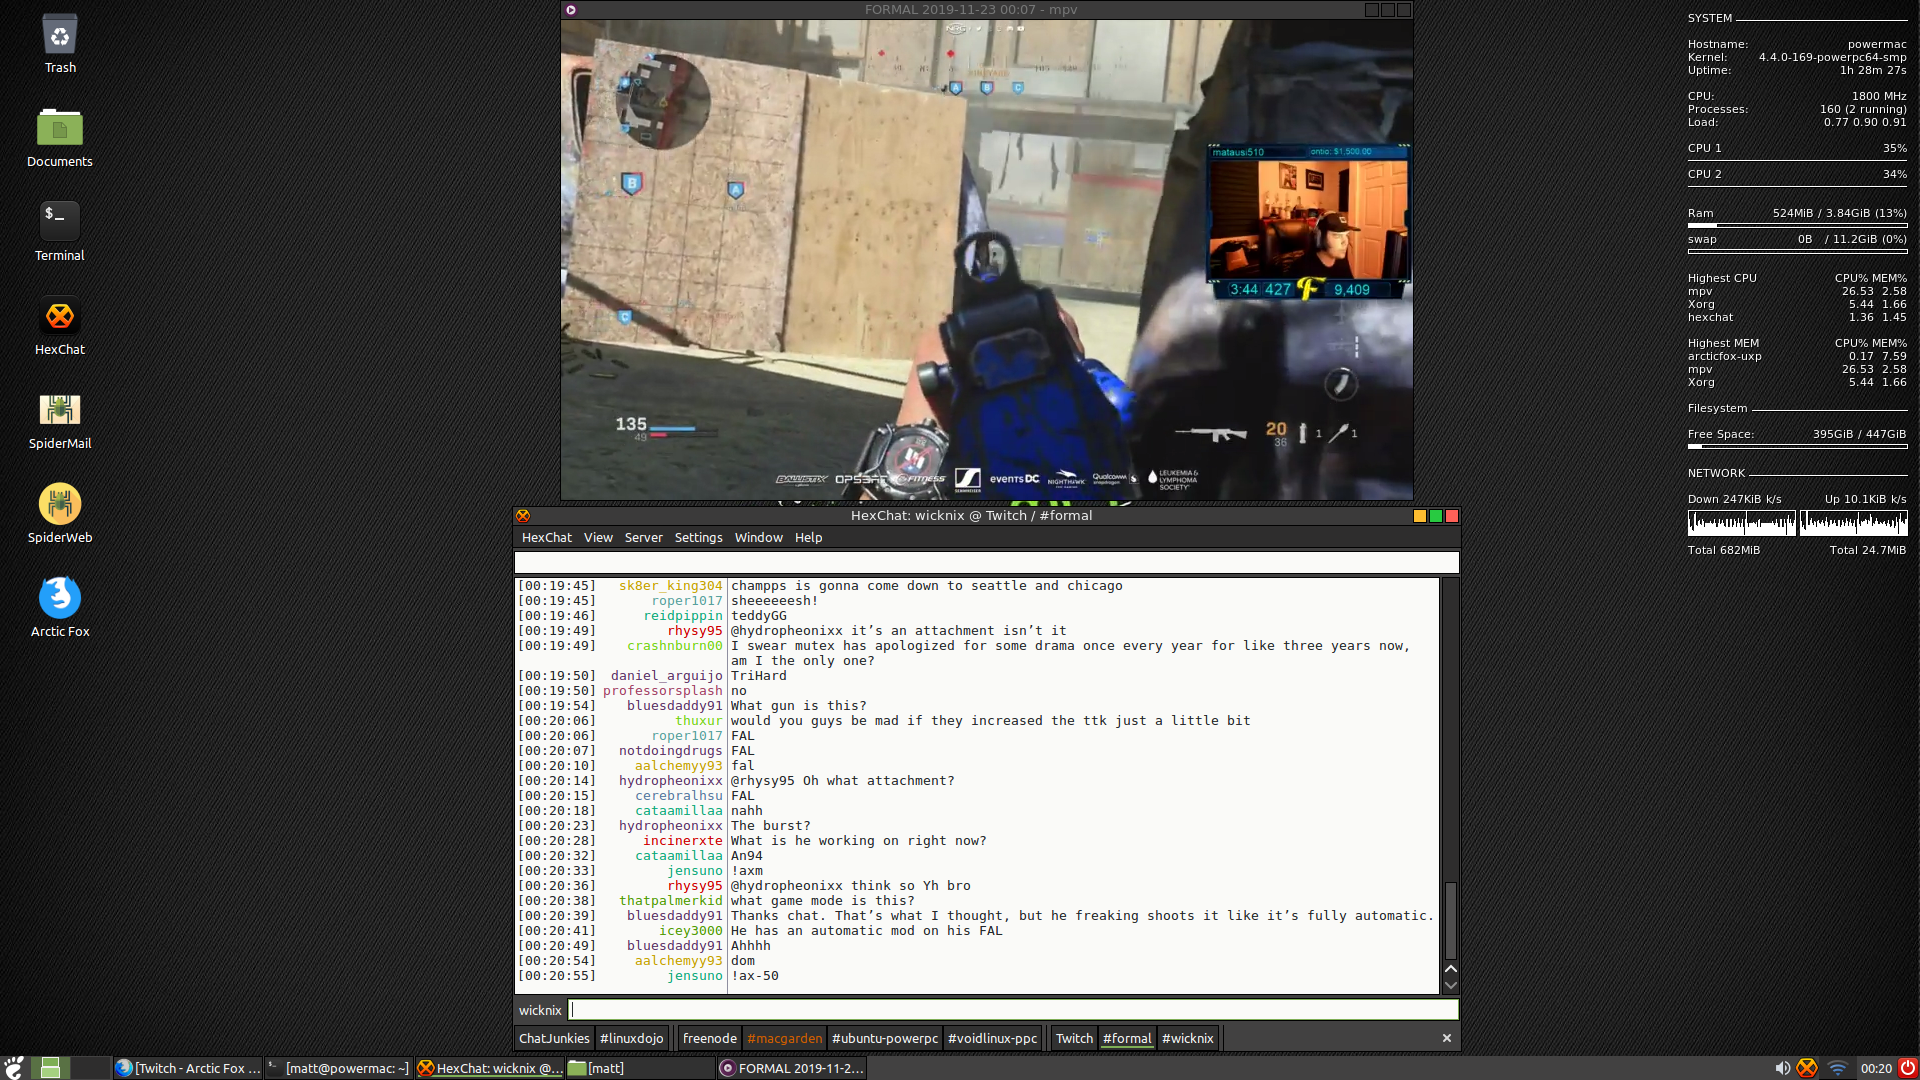 twitch+chat-ppc-linux2.png